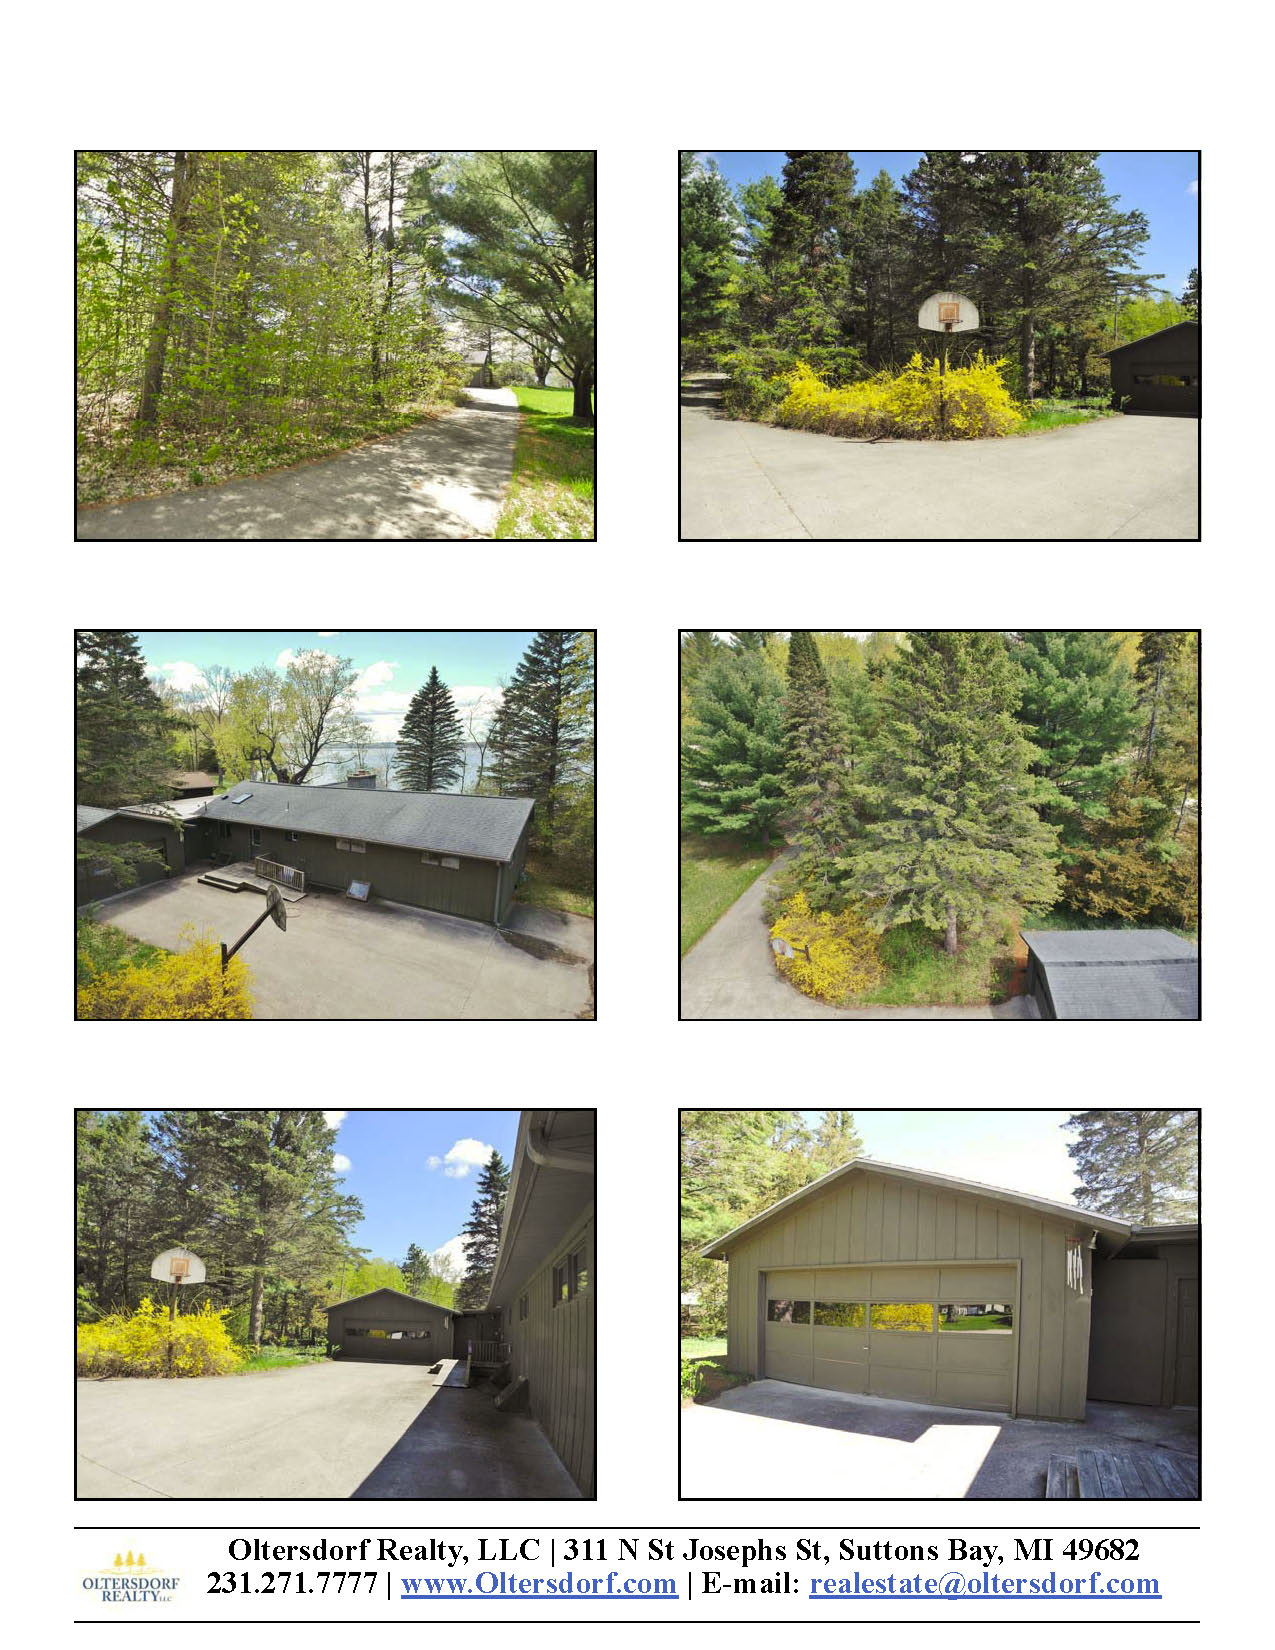 8164 S Lakeview Road, Traverse City, MI – Ranch Home & 100' on Lake Leelanau - For Sale by Oltersdorf Realty LLC - Marketing Packet (4).jpg